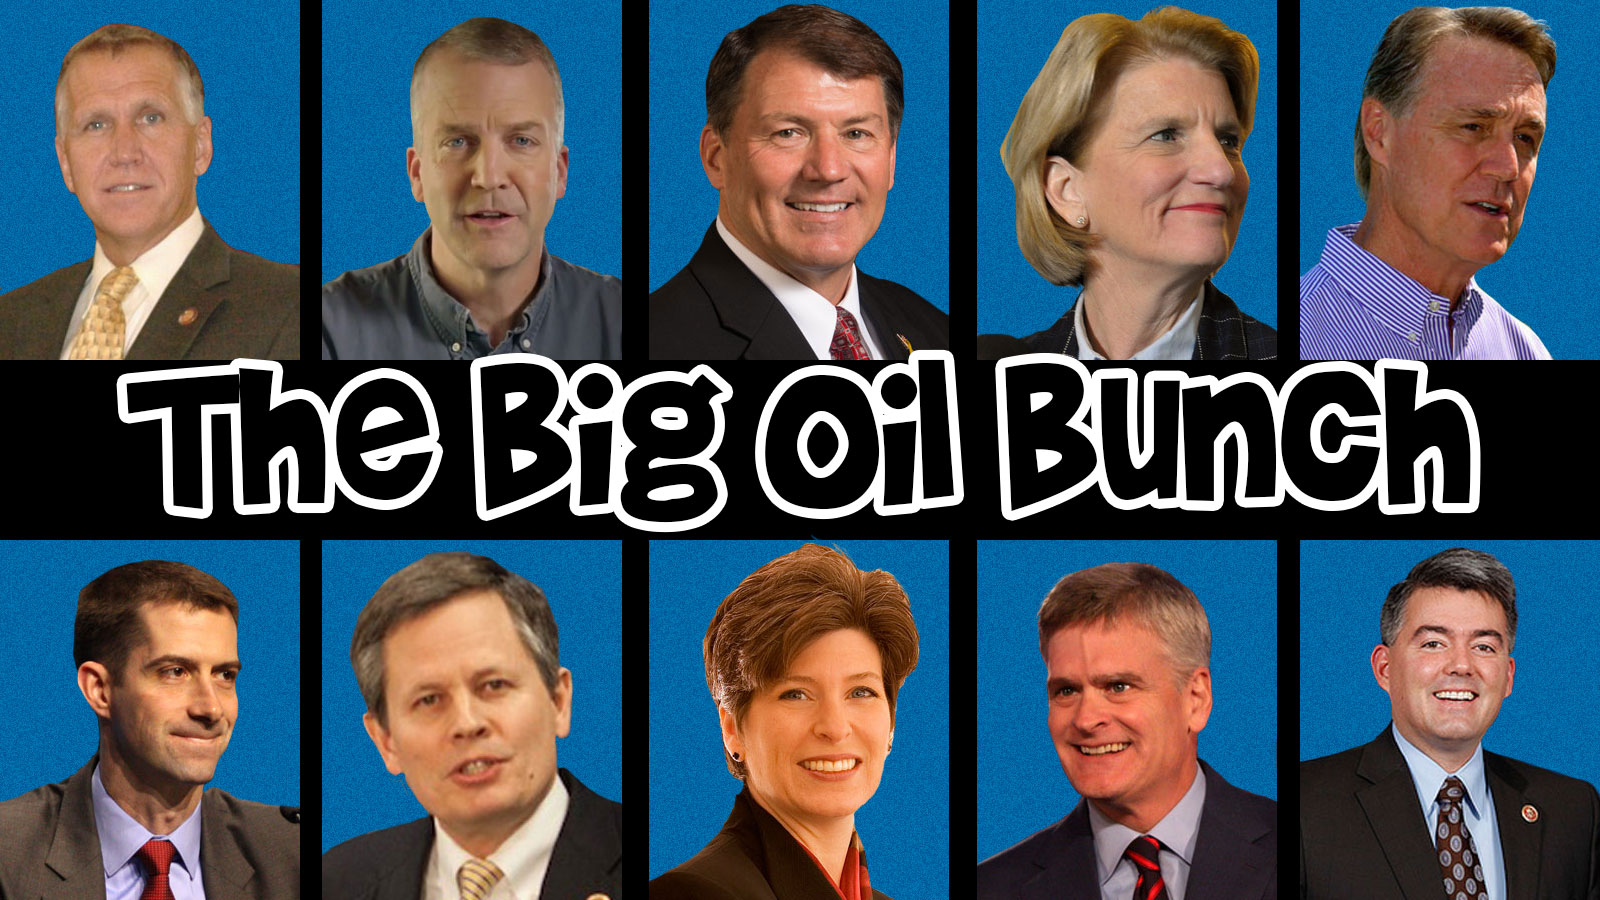 The Big Oil Bunch